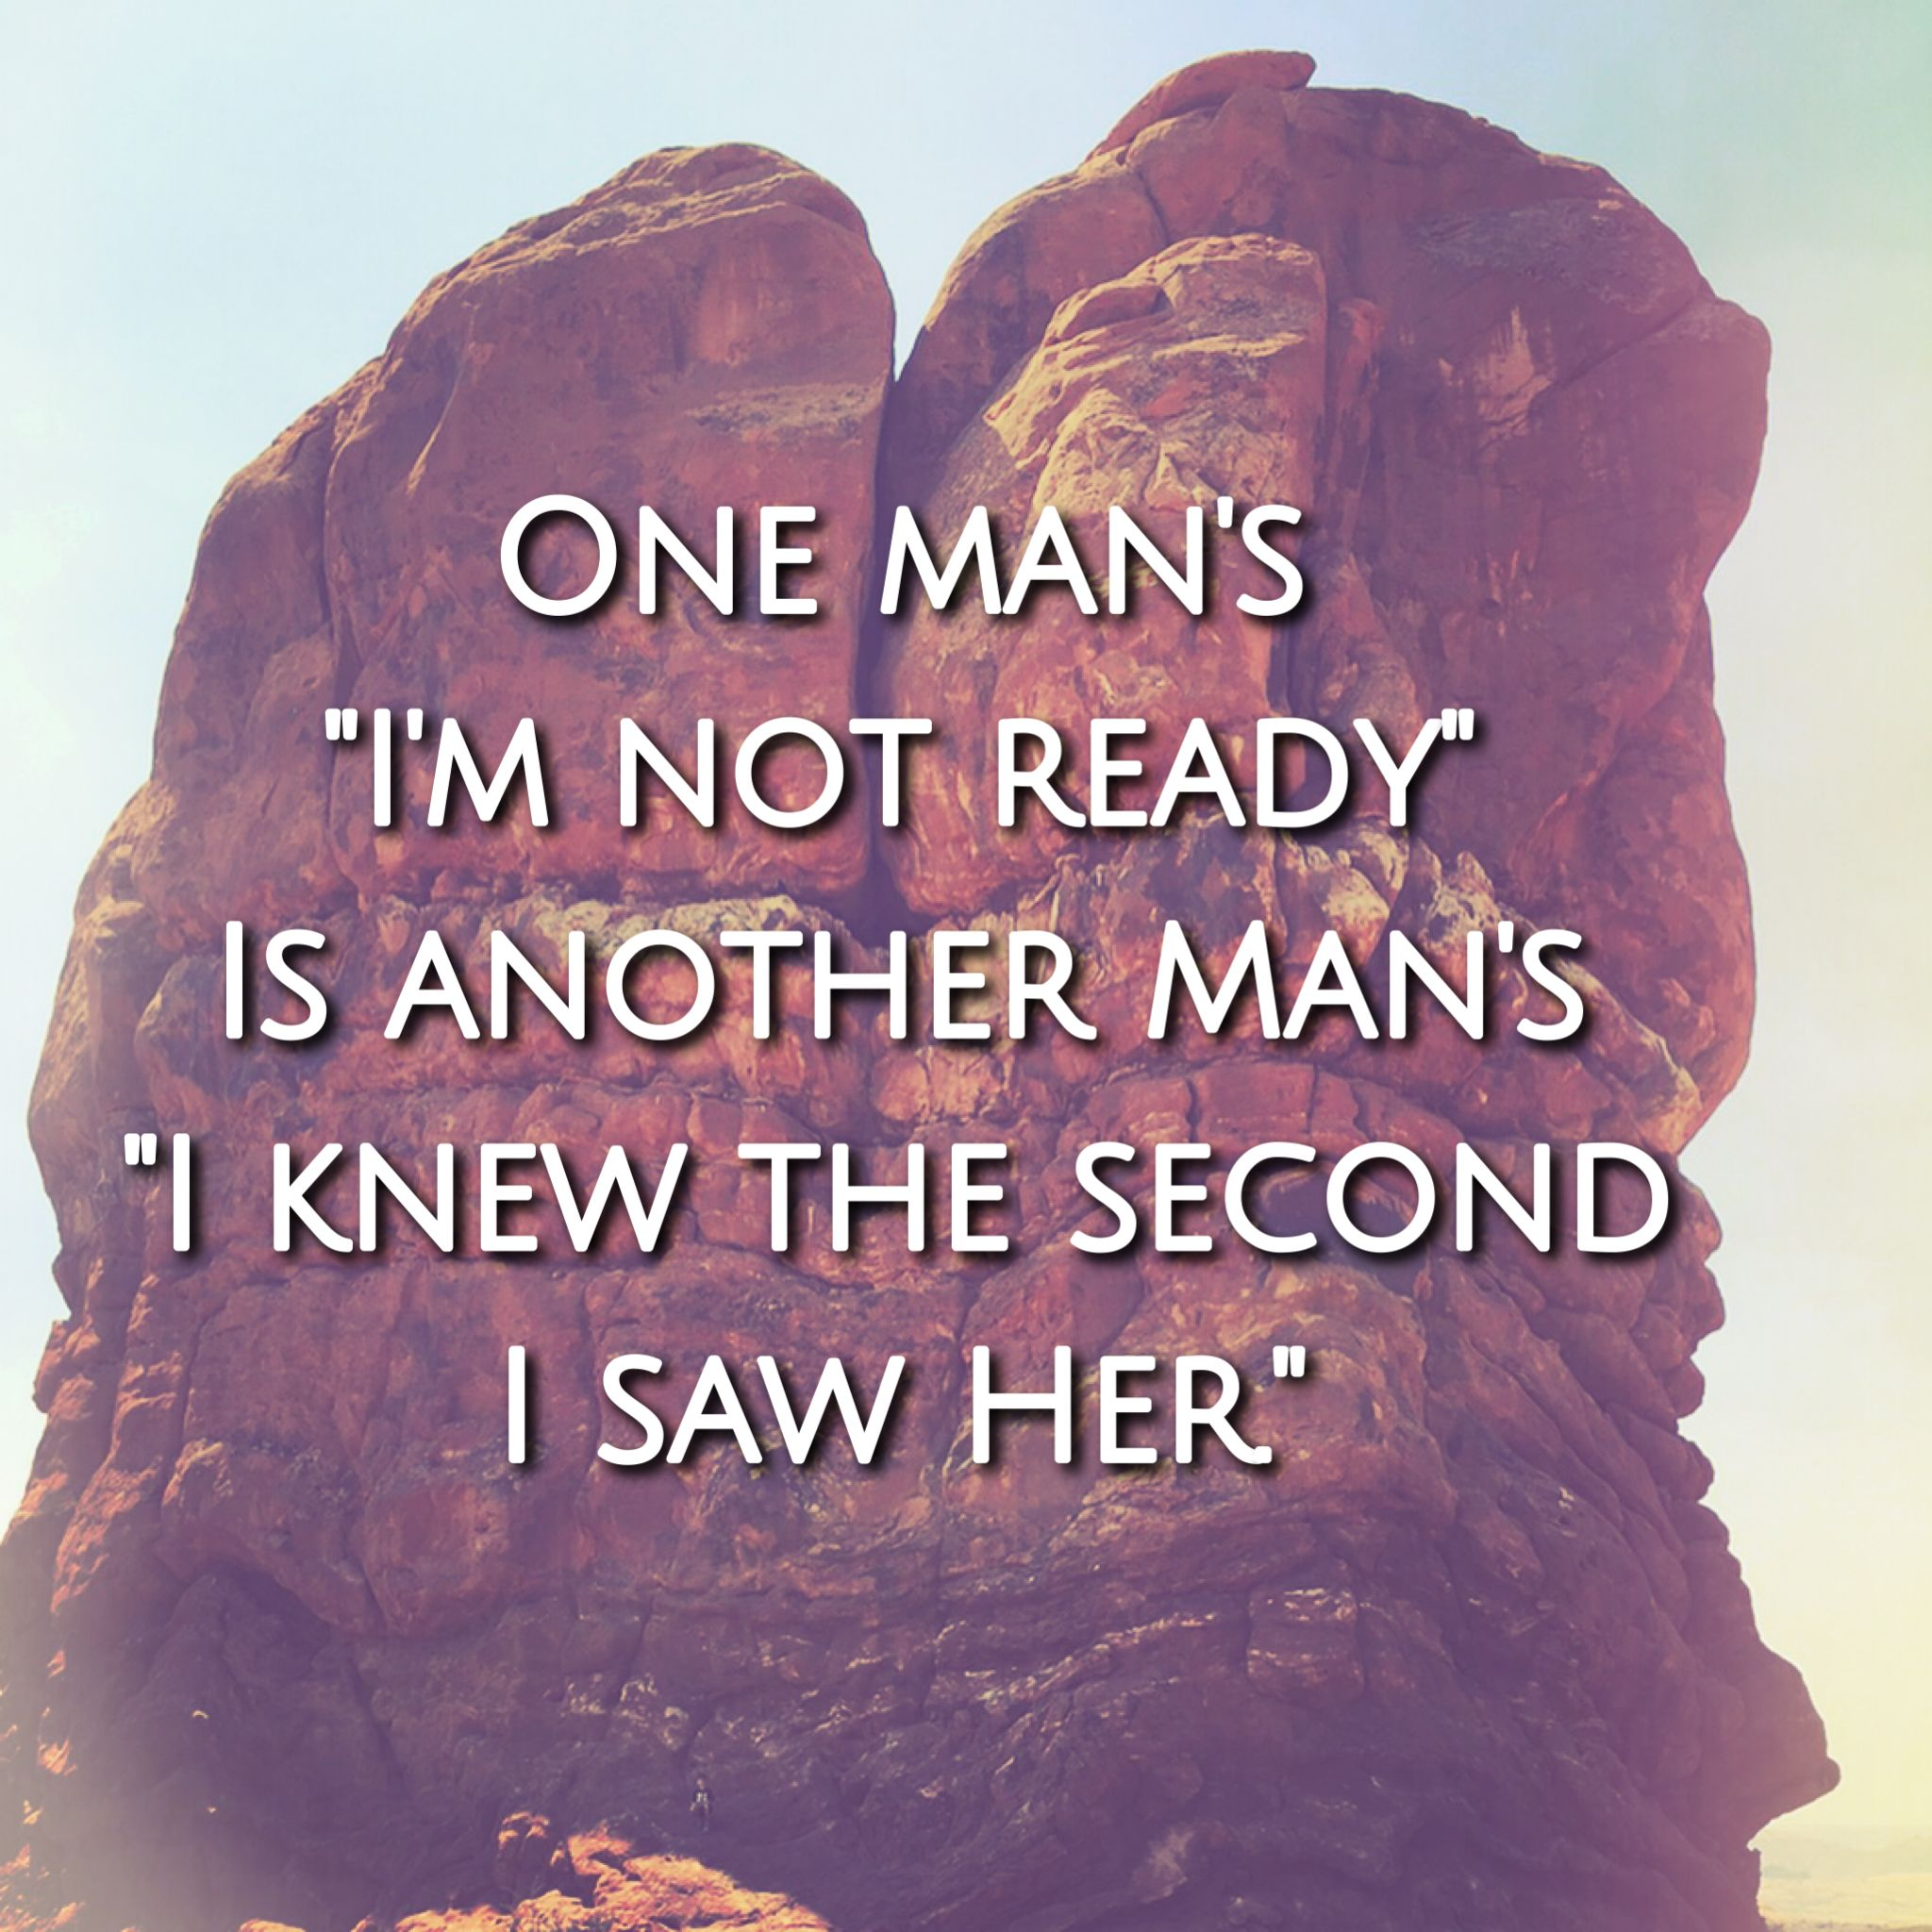 Why should you not wait when he says that he is not ready for something serious?